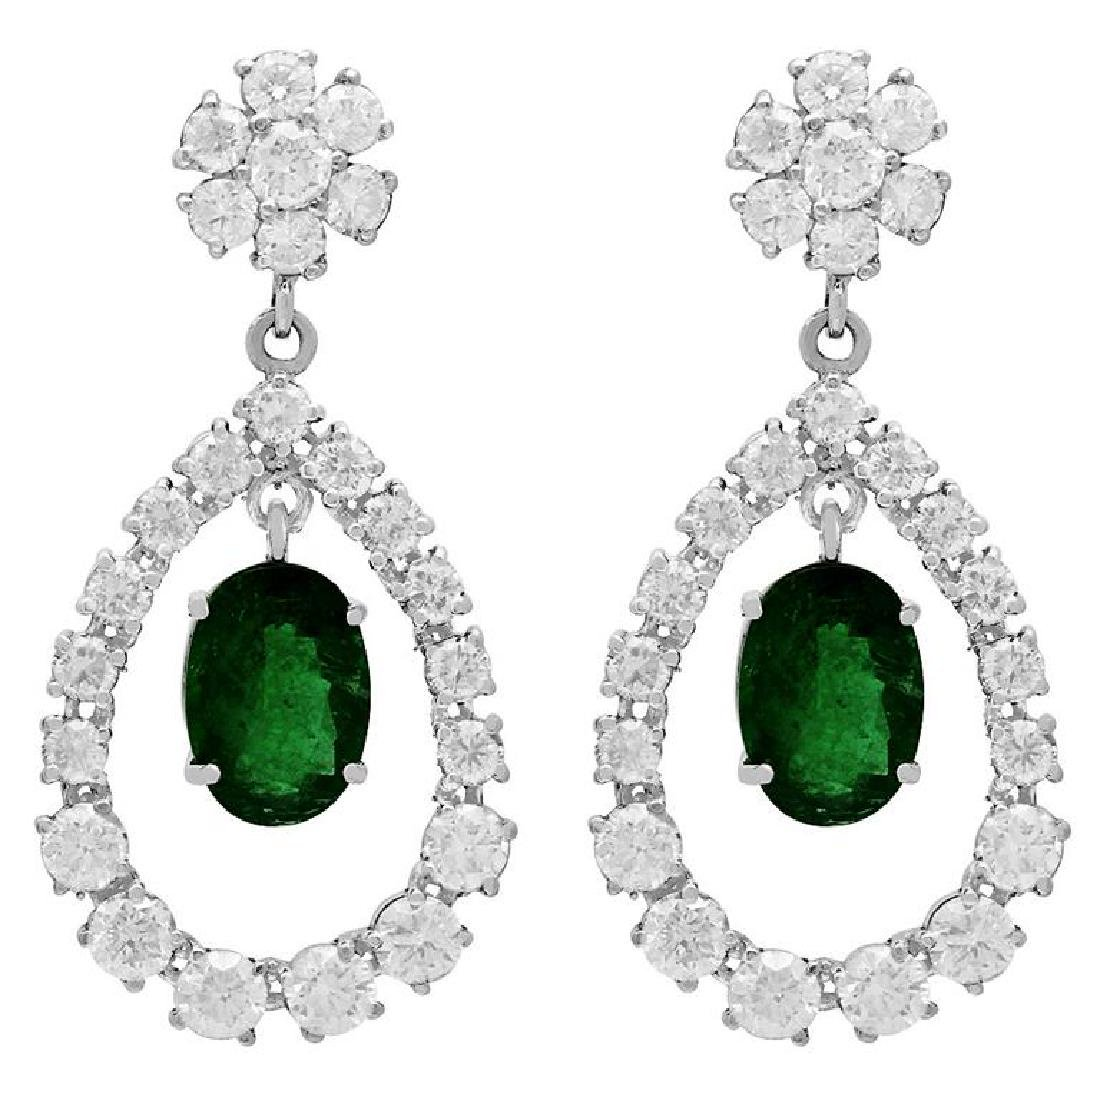 14k White Gold 5.91ct Emerald 7.10ct Diamond Earrings